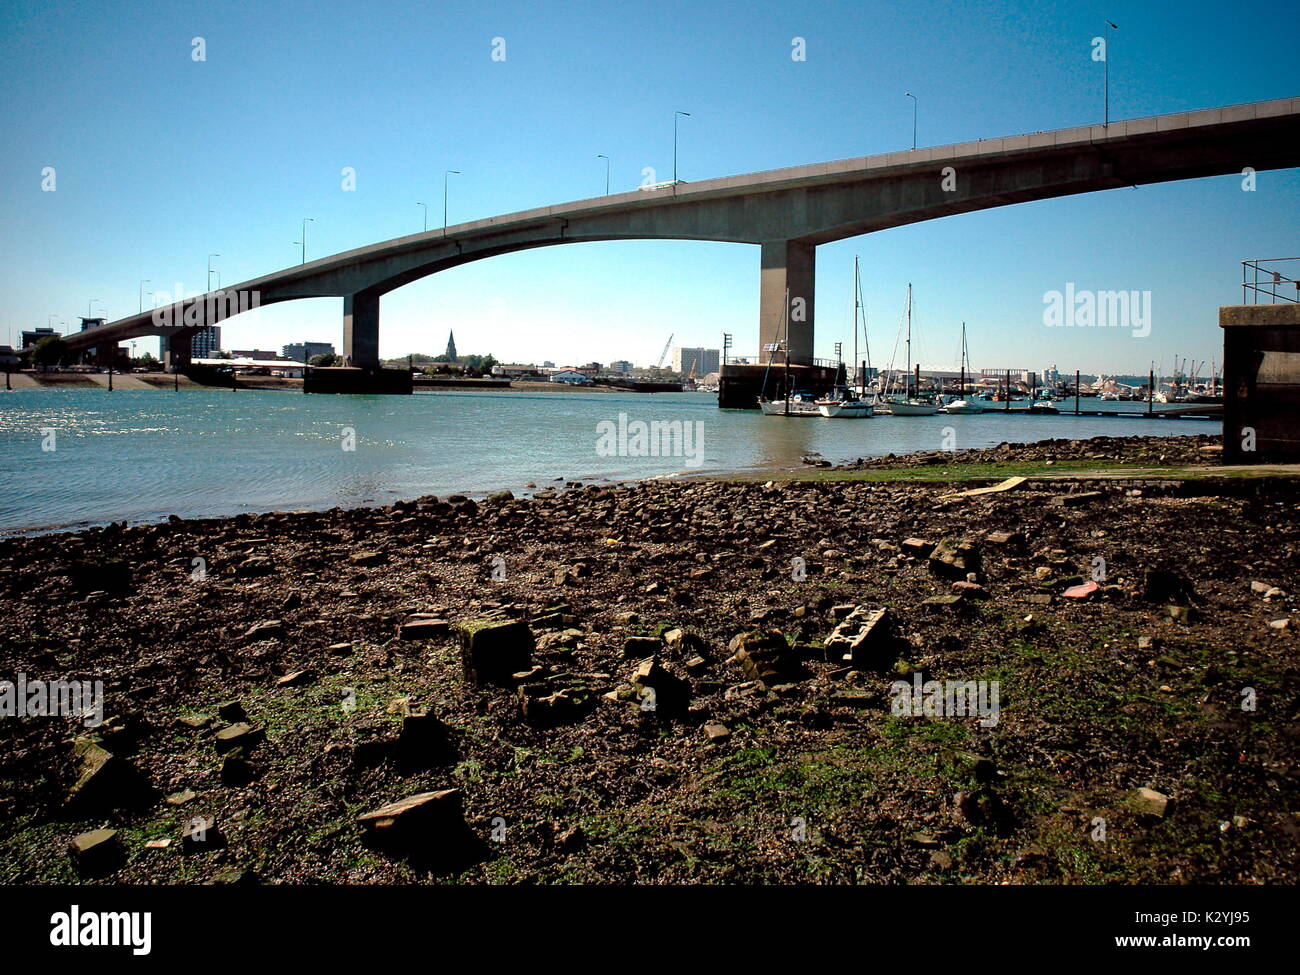 AJAXNETPHOTO. WOOLSTON, ENGLAND. - SPANNING THE RIVER - REINFORCD CONCRETE SPANS OF THE ITCHEN BRIDGE FROM THE WOOLSTON SIDE.  PHOTO:JONATHAN EASTLAND/AJAX REF:061110 - Stock Image